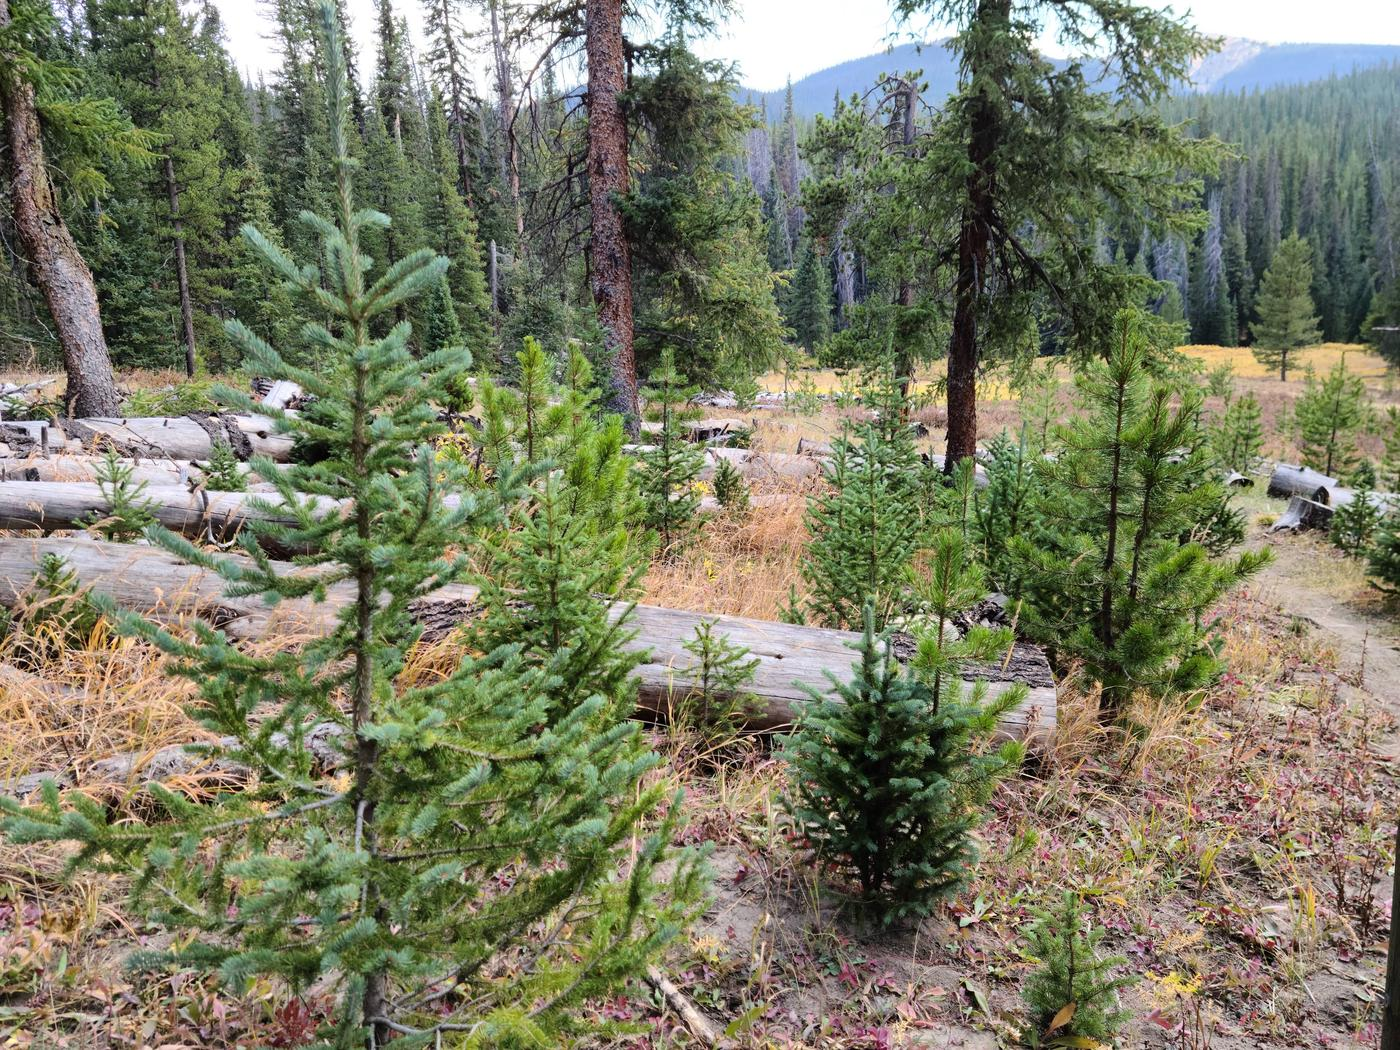 2020 Wasatch Christmas Tree Permit Uinta Wasatch Cache National Forest Christmas Tree Permit in Utah